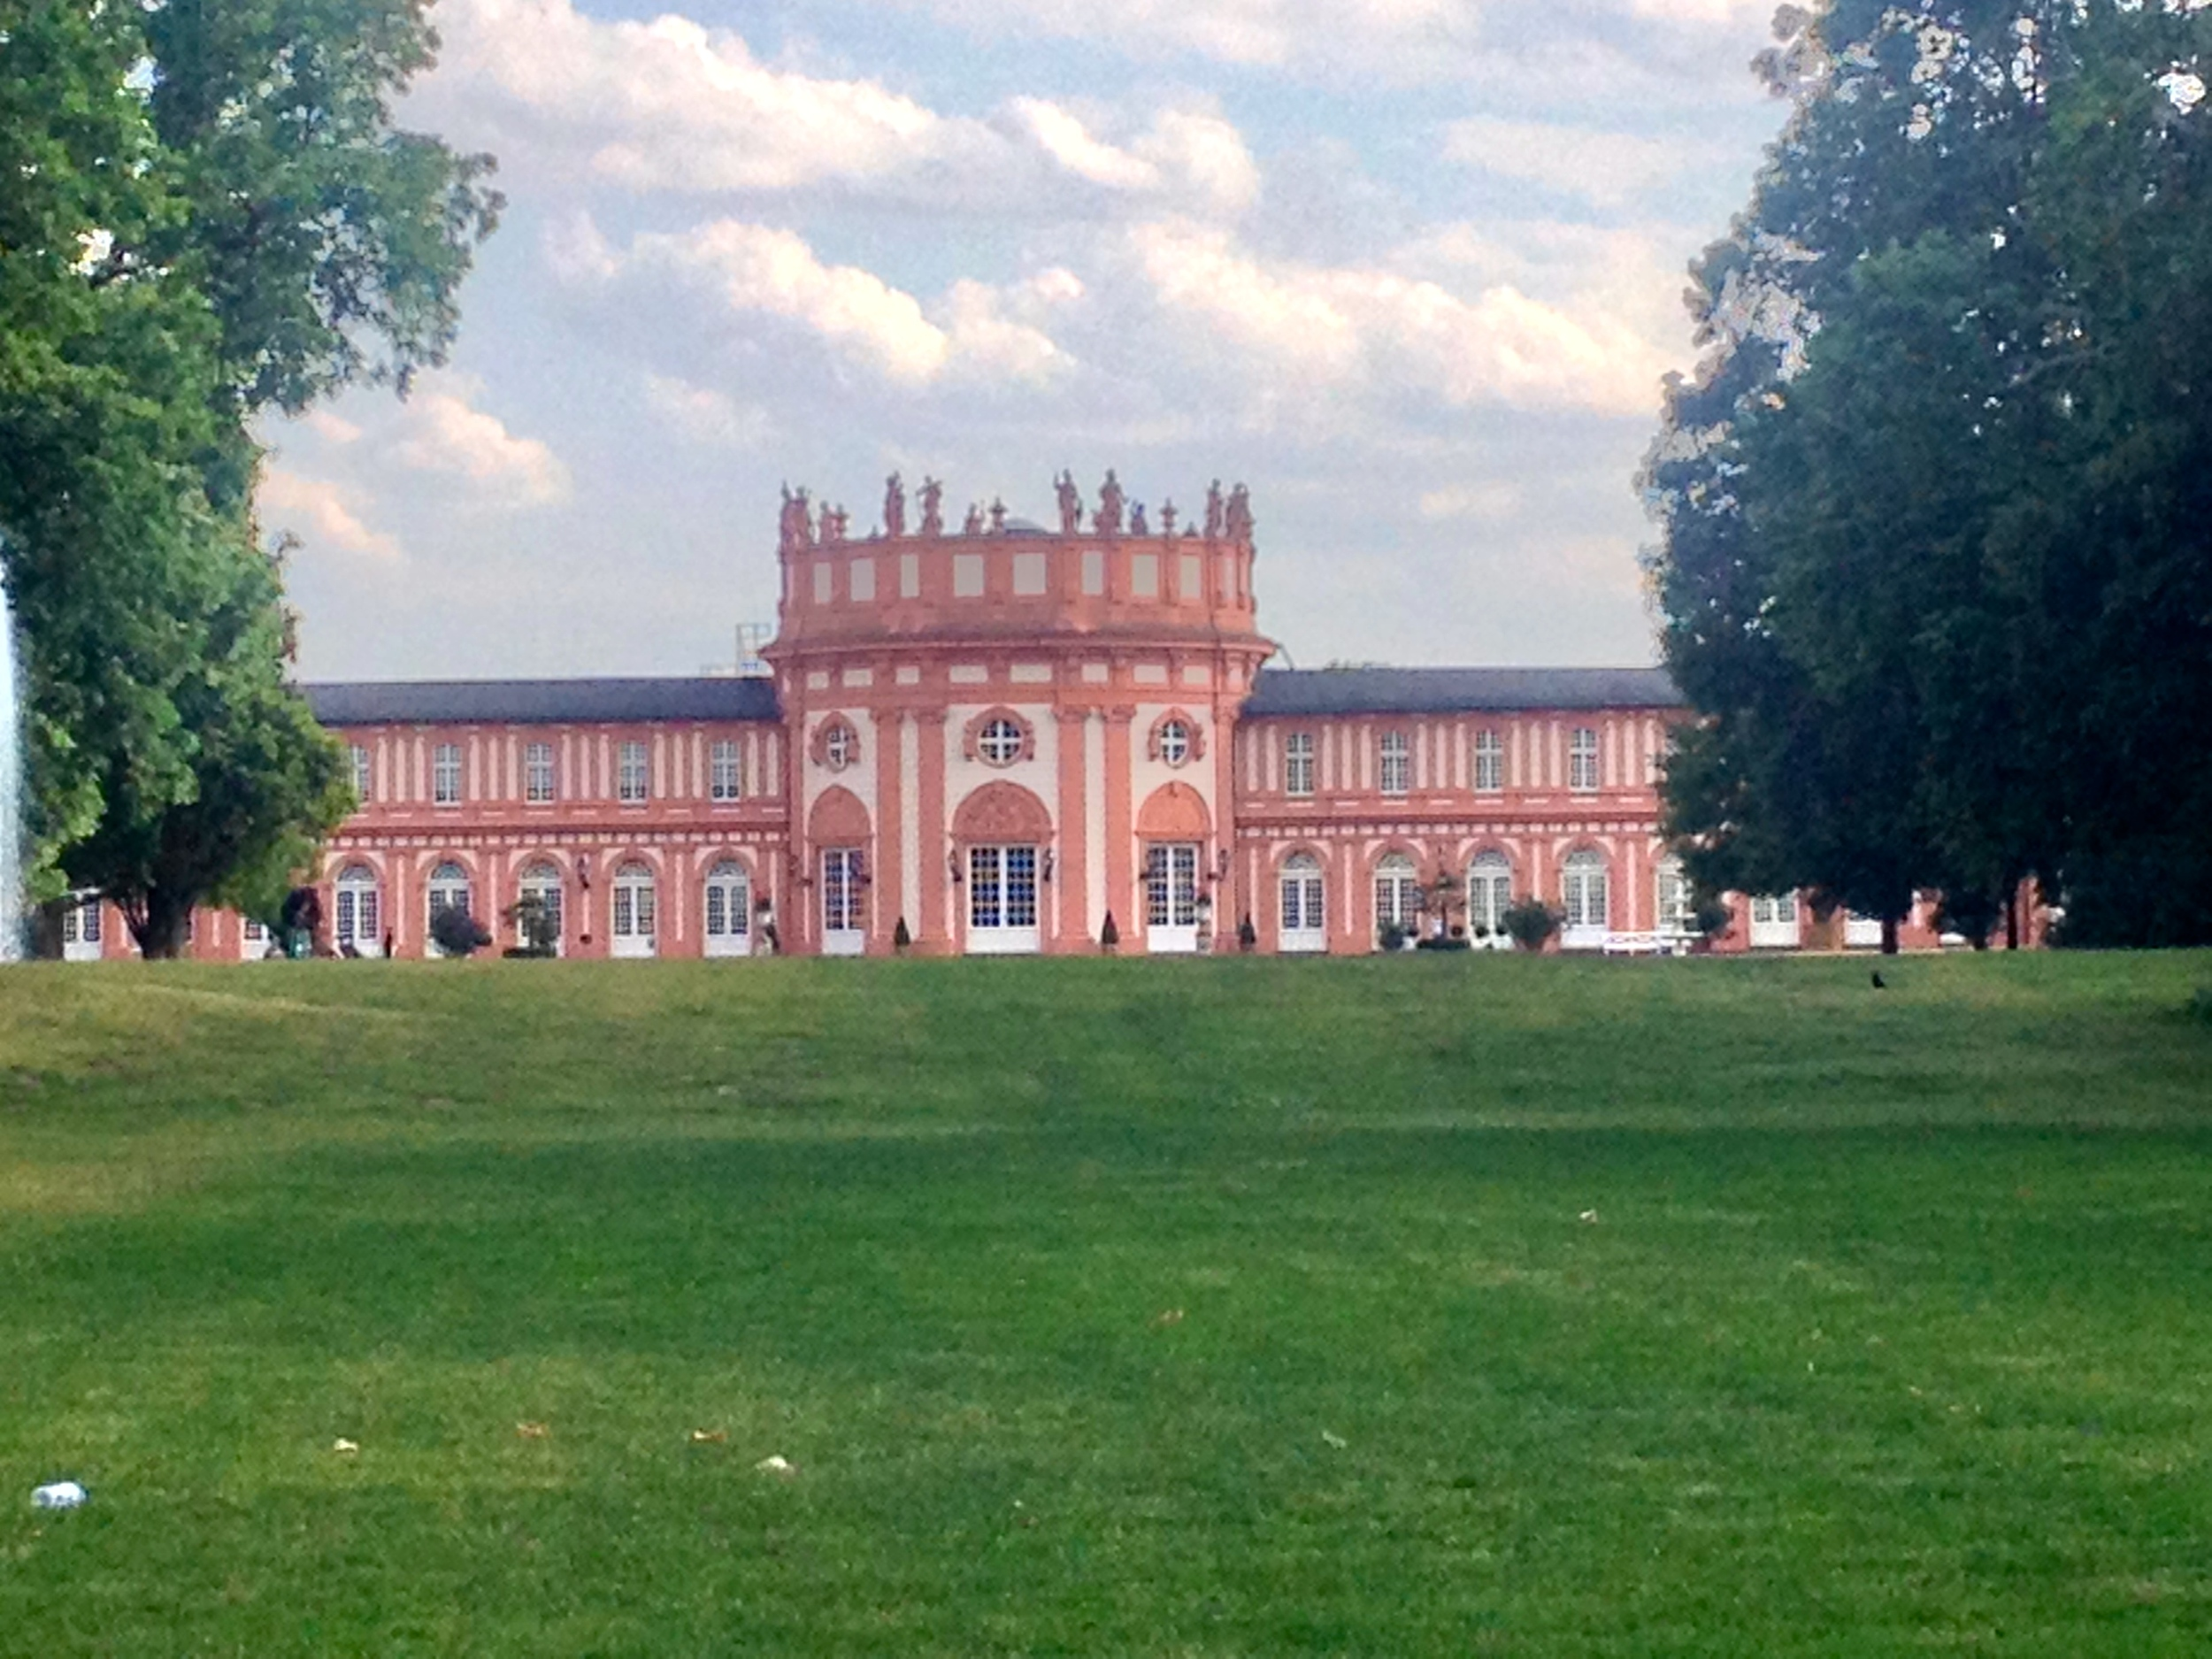 The Schloß (castle) in Wiesbaden